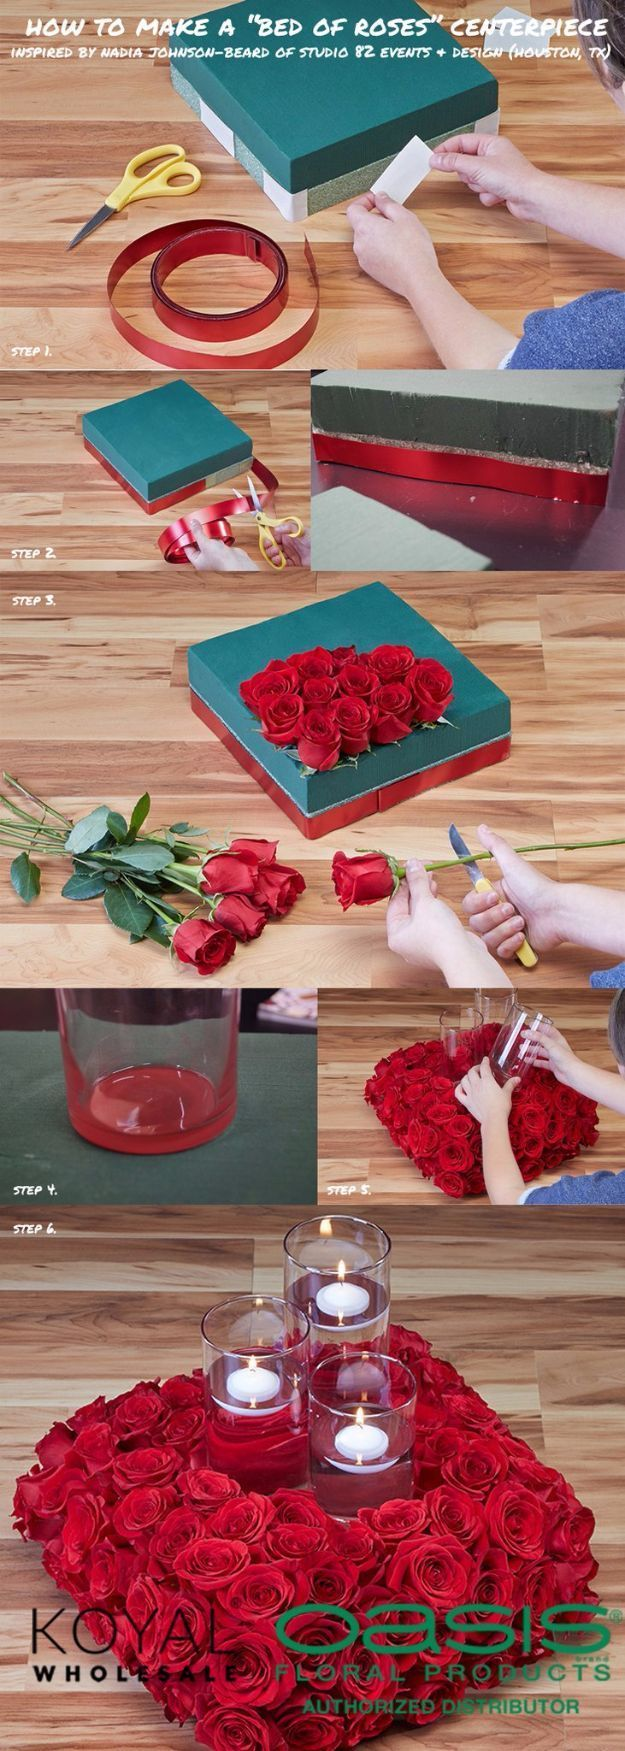 Diy wedding centerpieces diy bed of roses floating candle